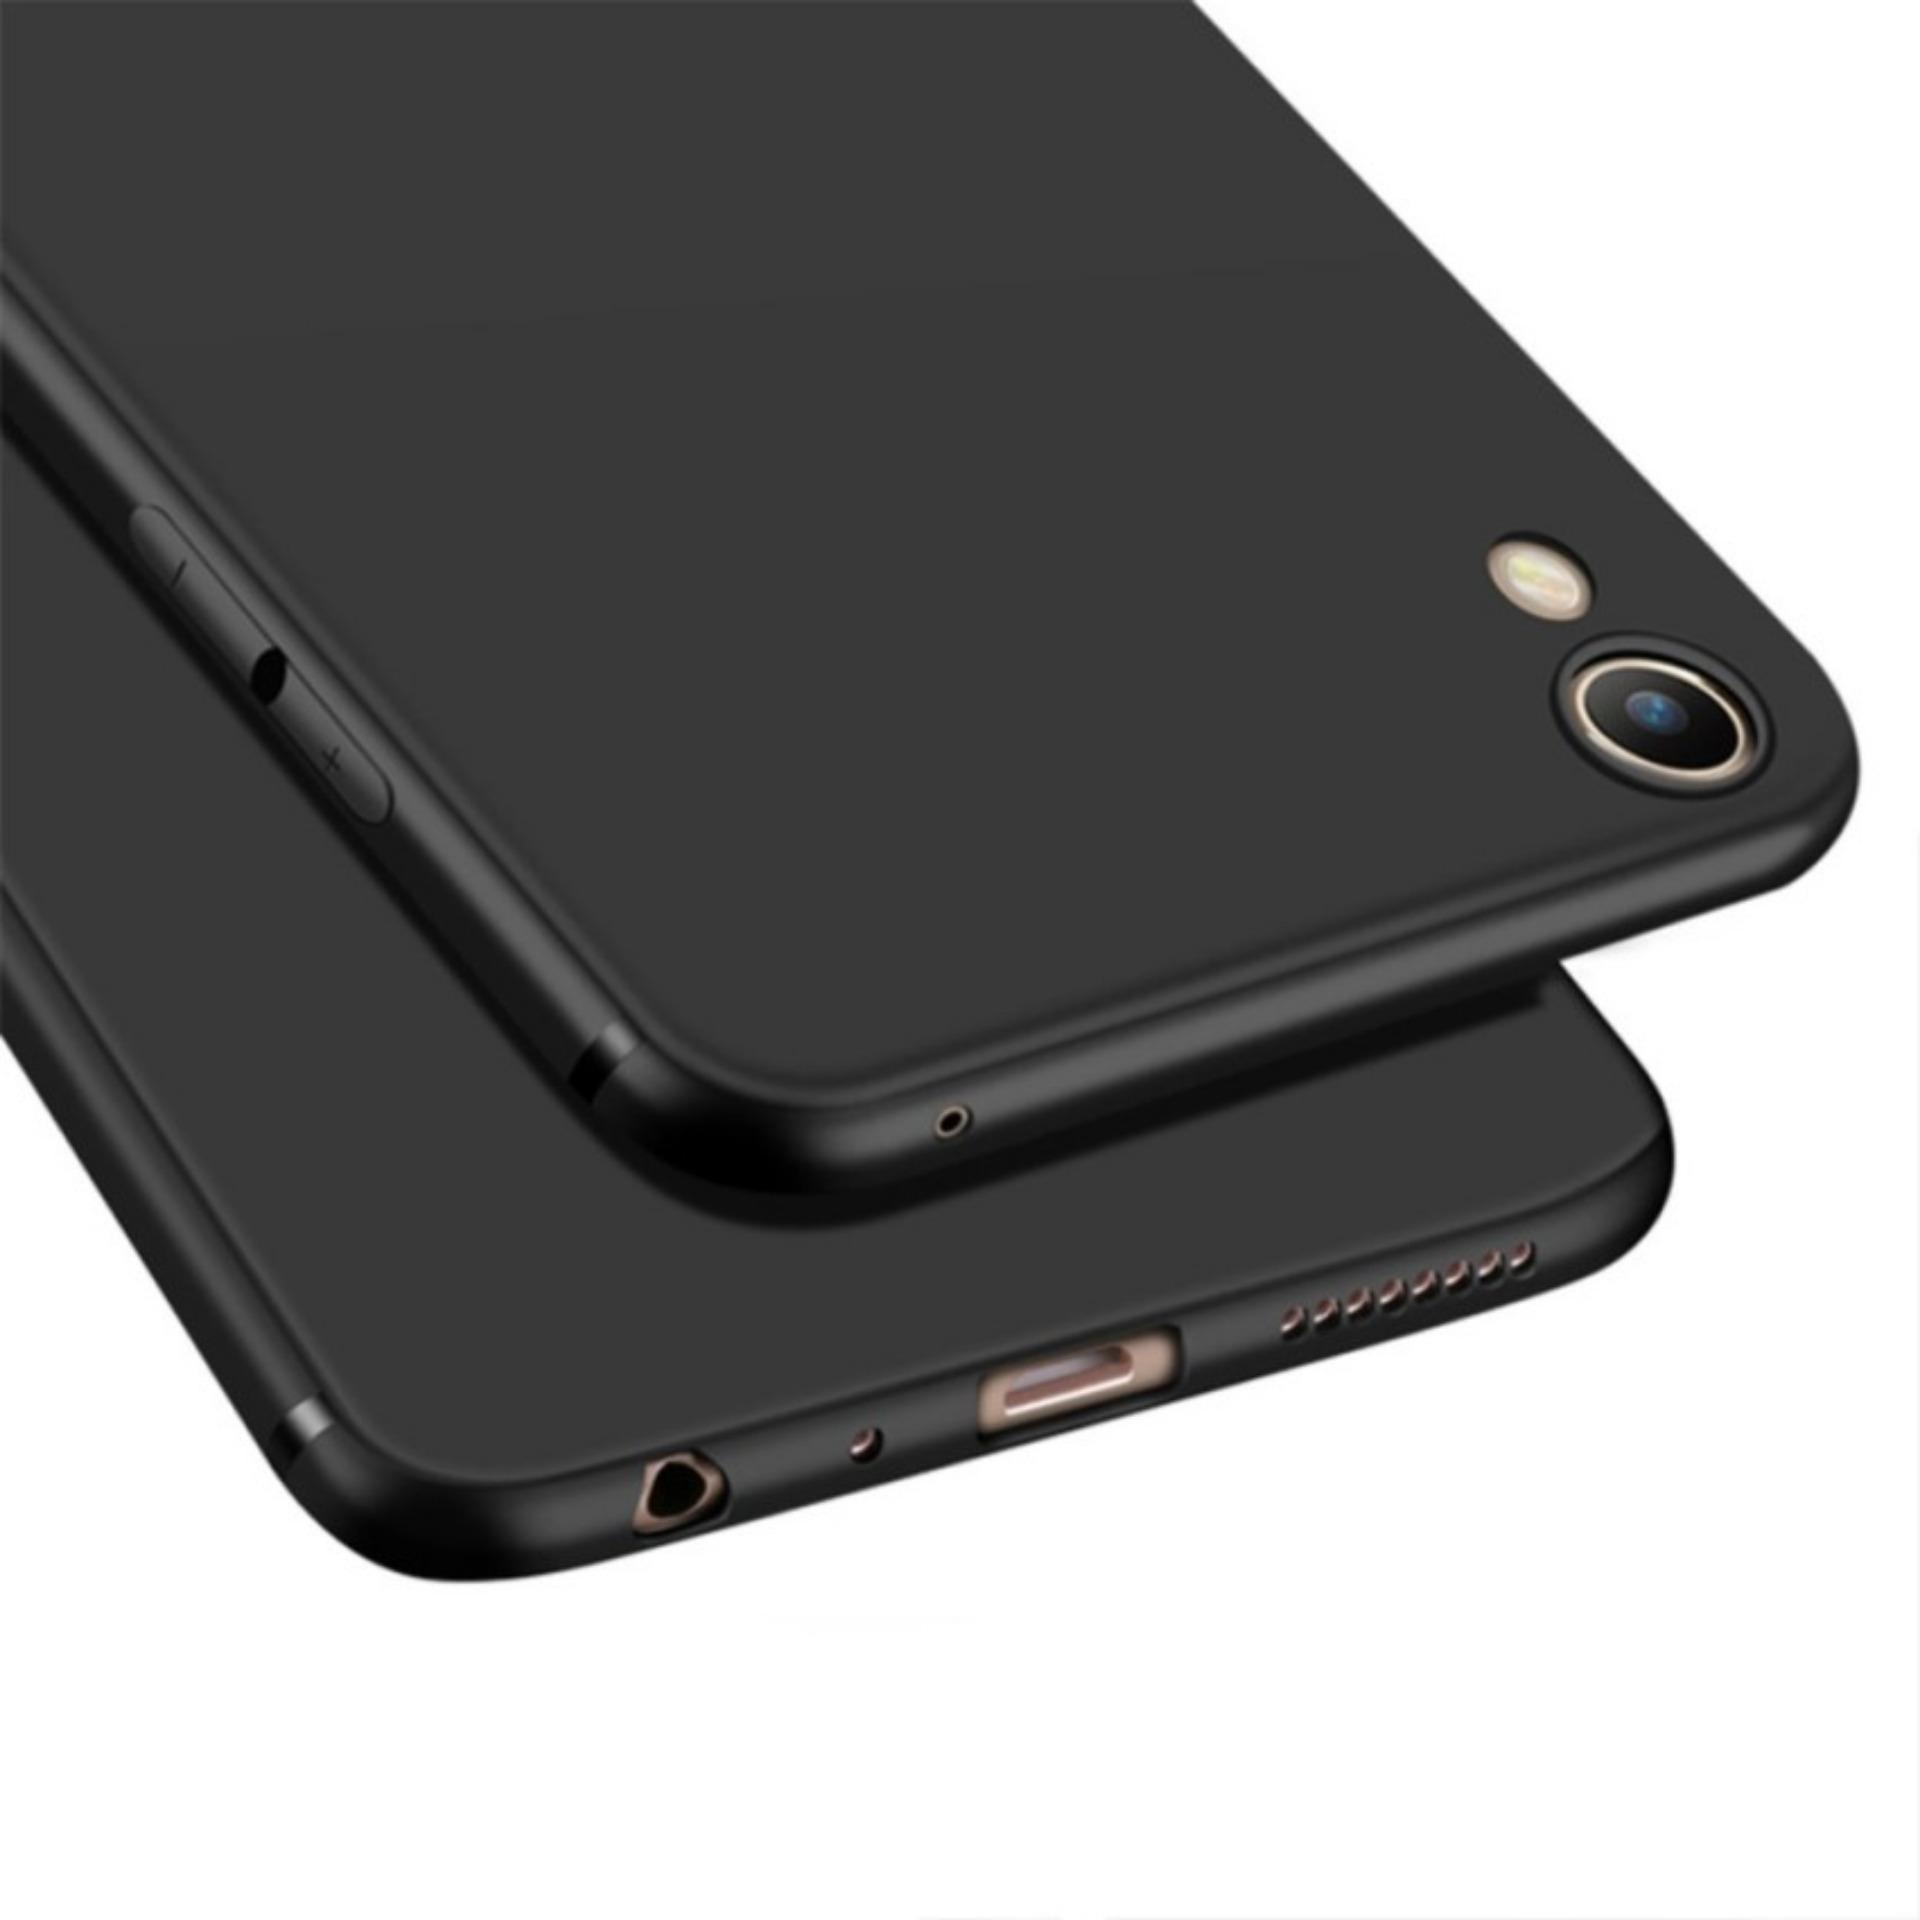 Case Slim Black Matte Oppo A37 Neo 9 Baby Skin Softcase Ultra Thin Jelly Silikon